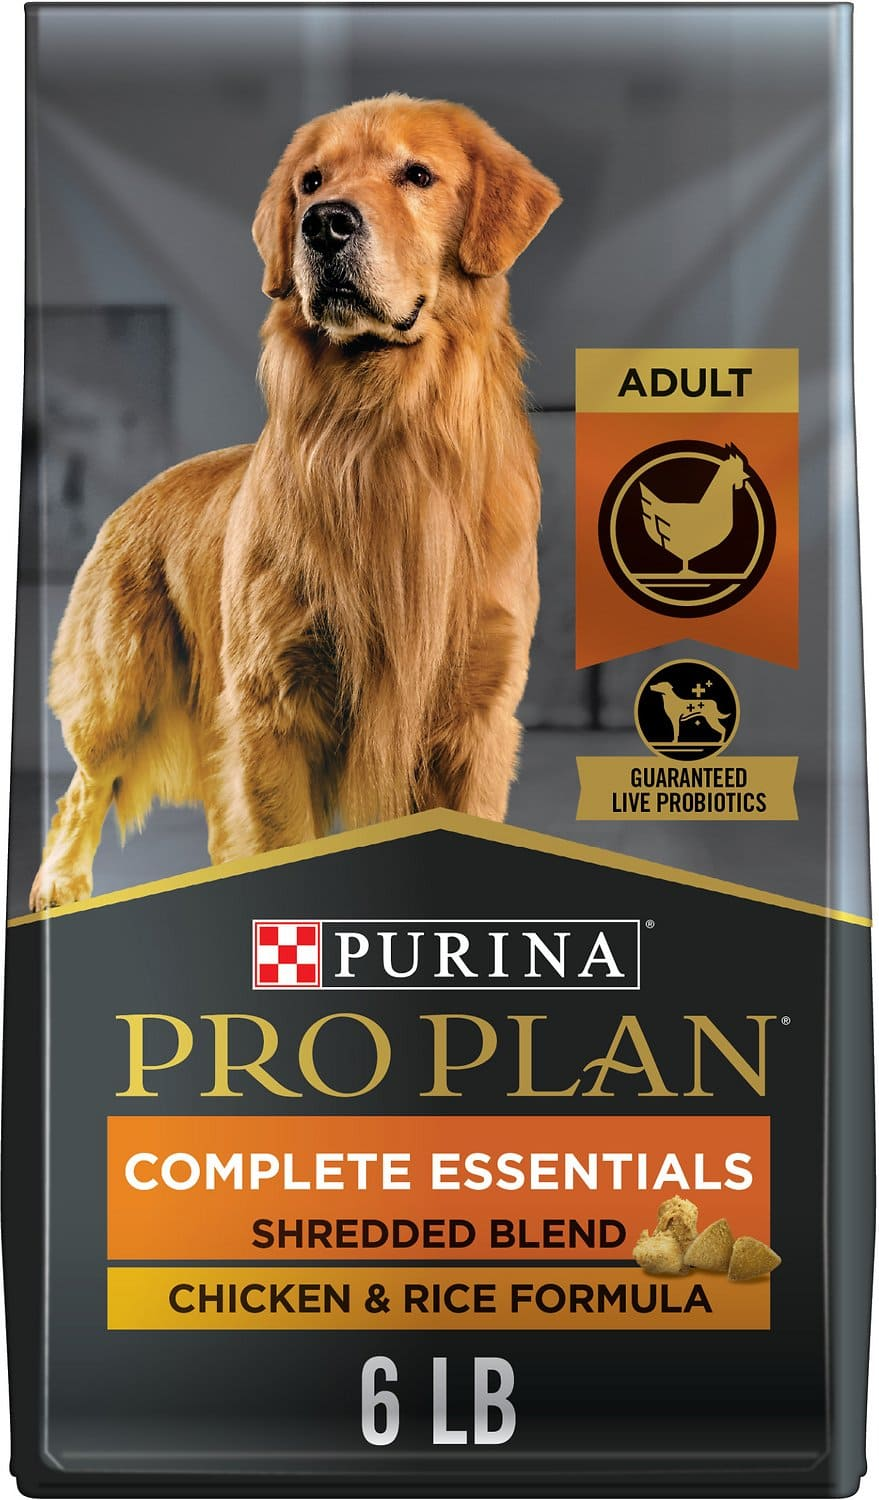 Purina Pro Plan Adult Complete Essentials Shredded Blend Formula for Dogs 6 lbs Chicken & Rice 1